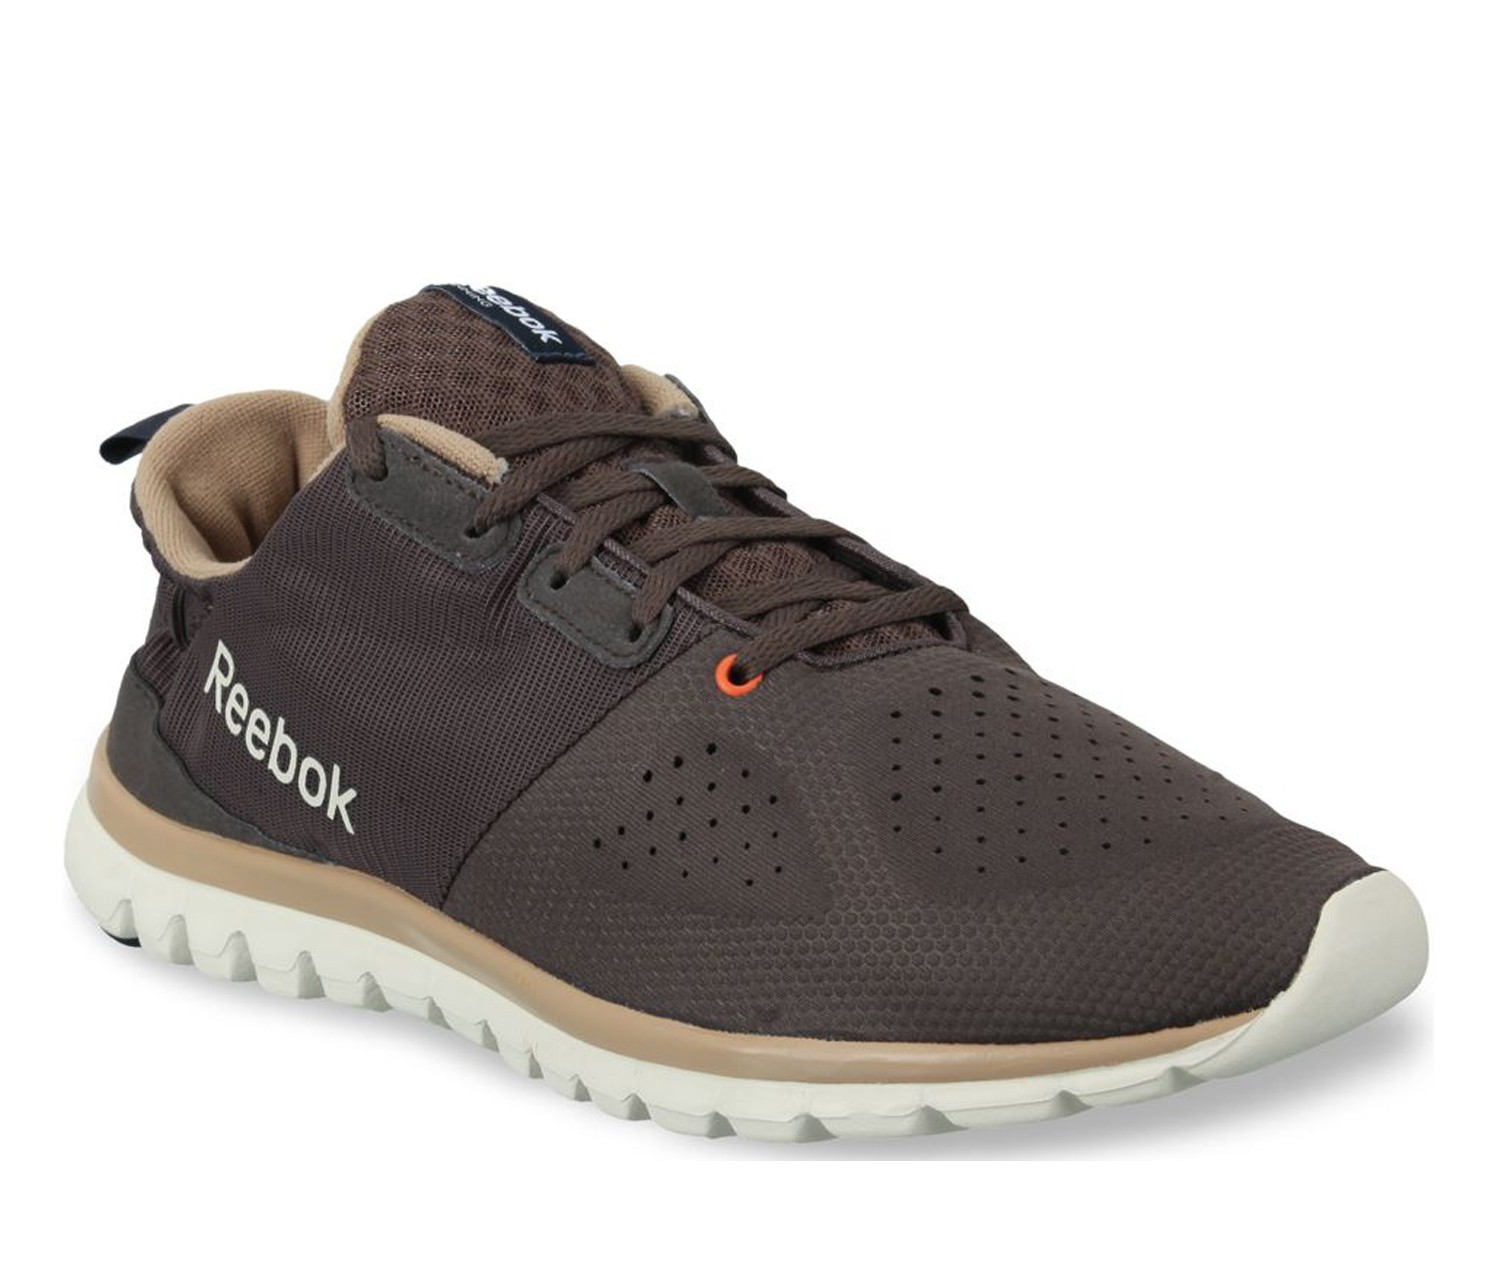 reebok organizational structure 1 discussion what factors drive nike's decision to stick with some form of network organizational structure rather than own its manufacturing operations.